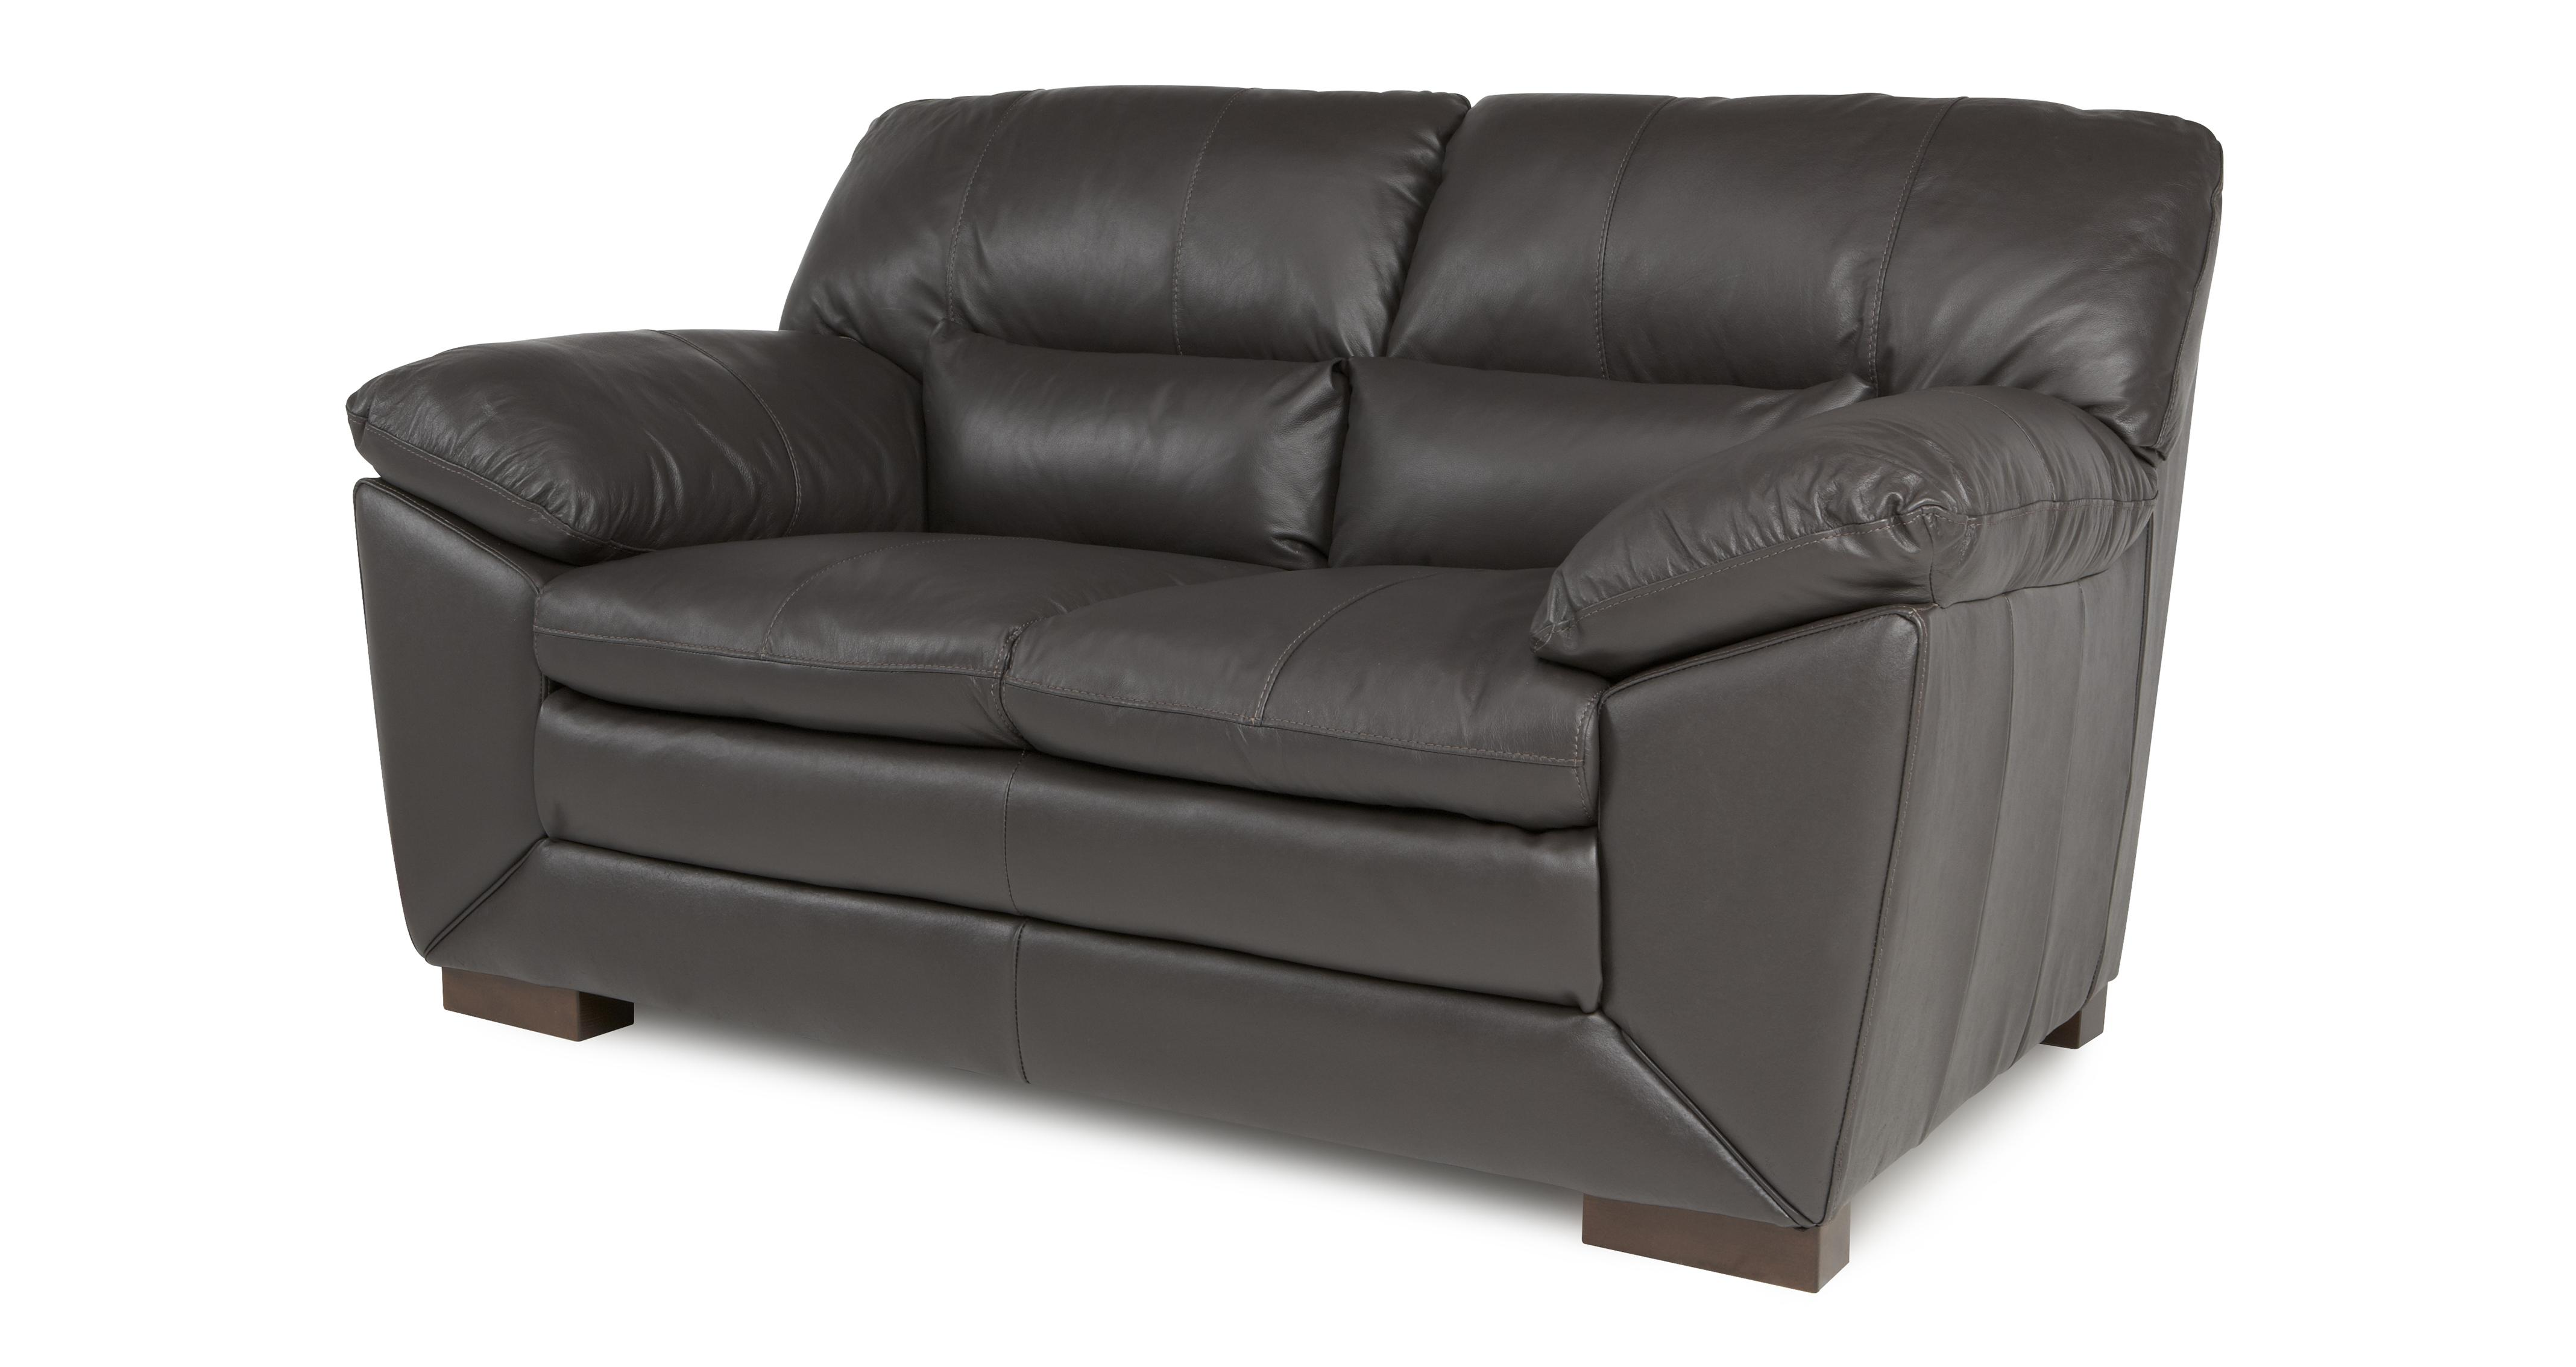 2 seater leather sofas at dfs cheap small double sofa beds valiant mocha brown ebay